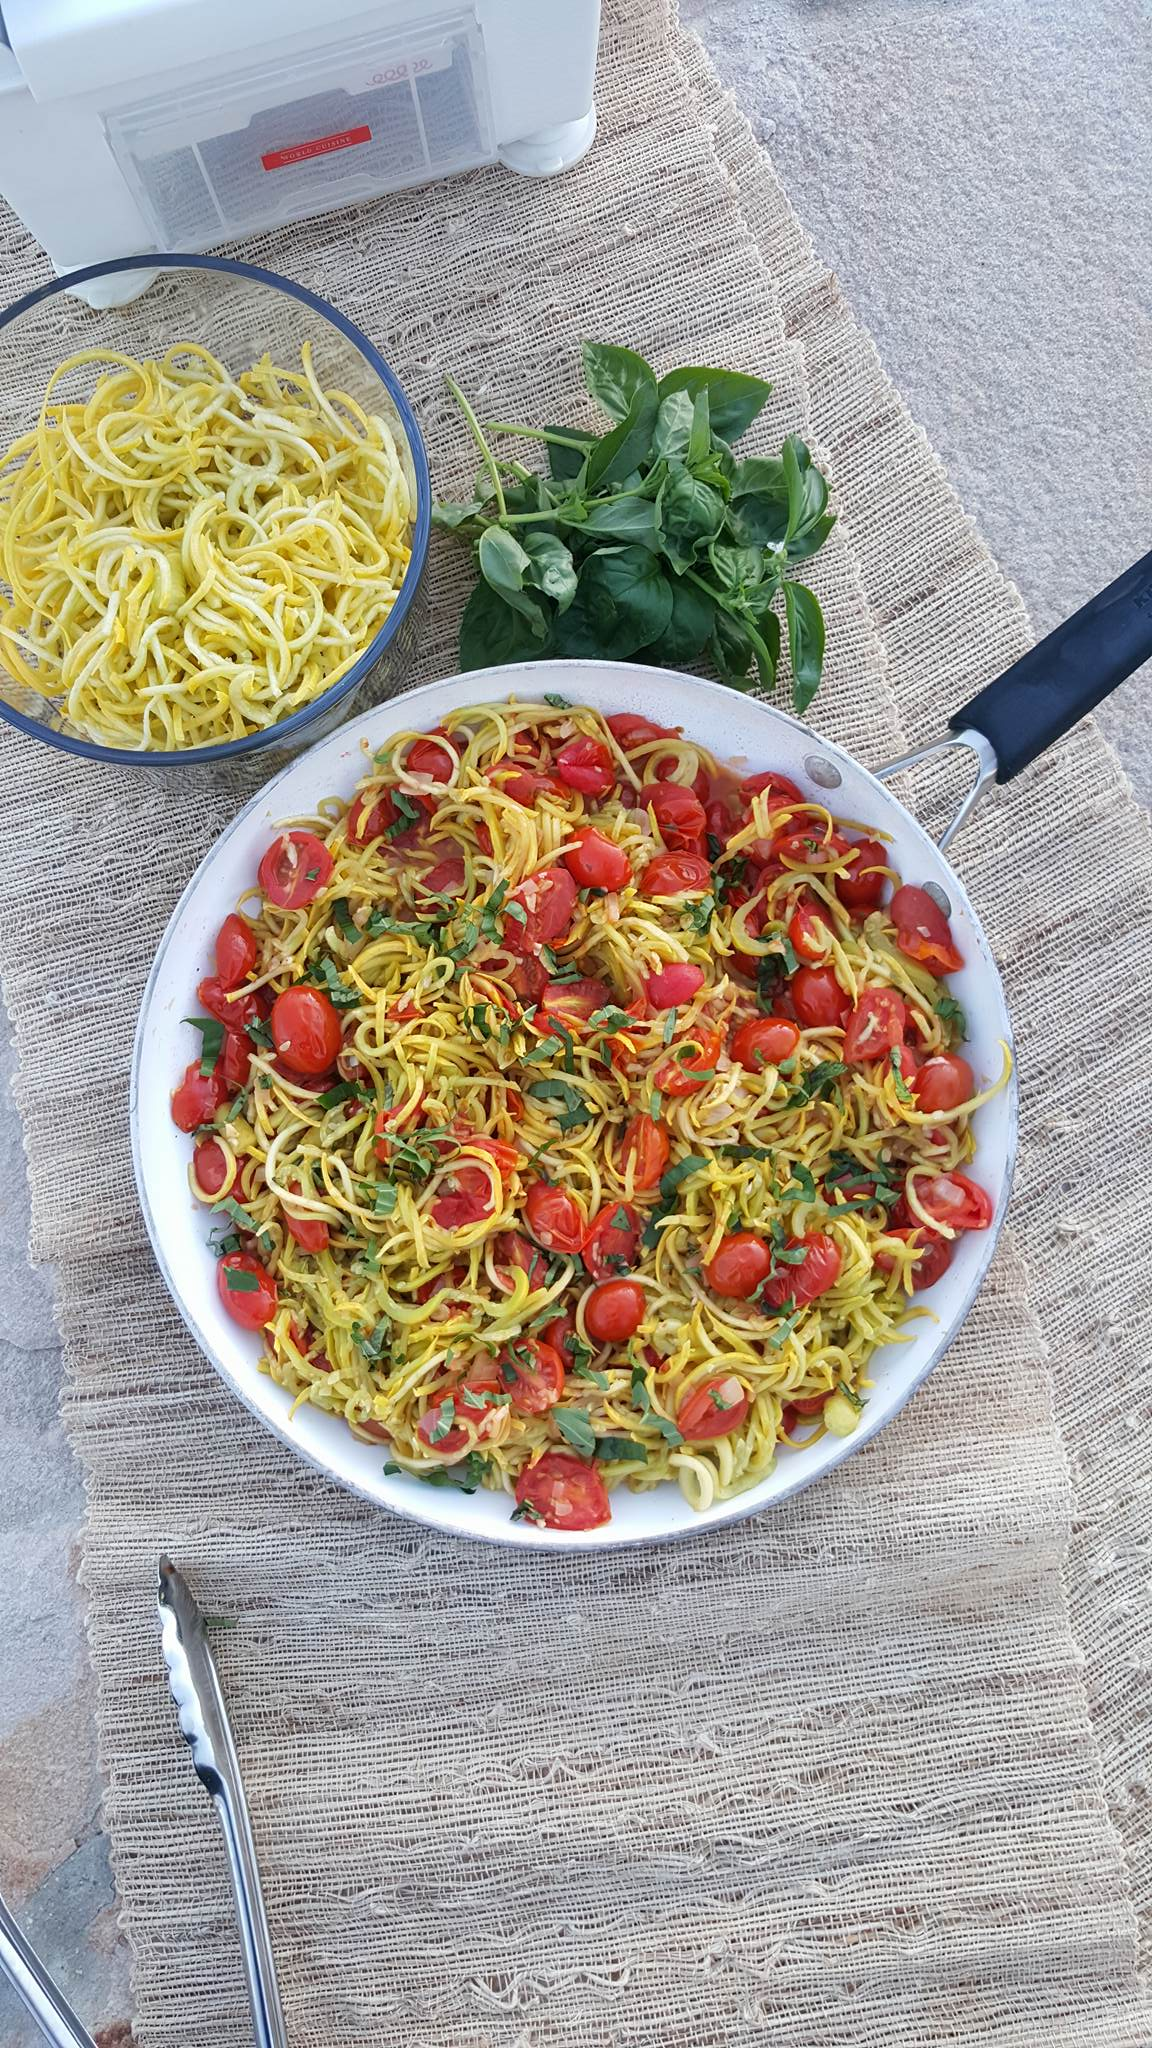 Yellow Summer Squash 'Spaghetti' with Roasted Tomato Sauce Recipe